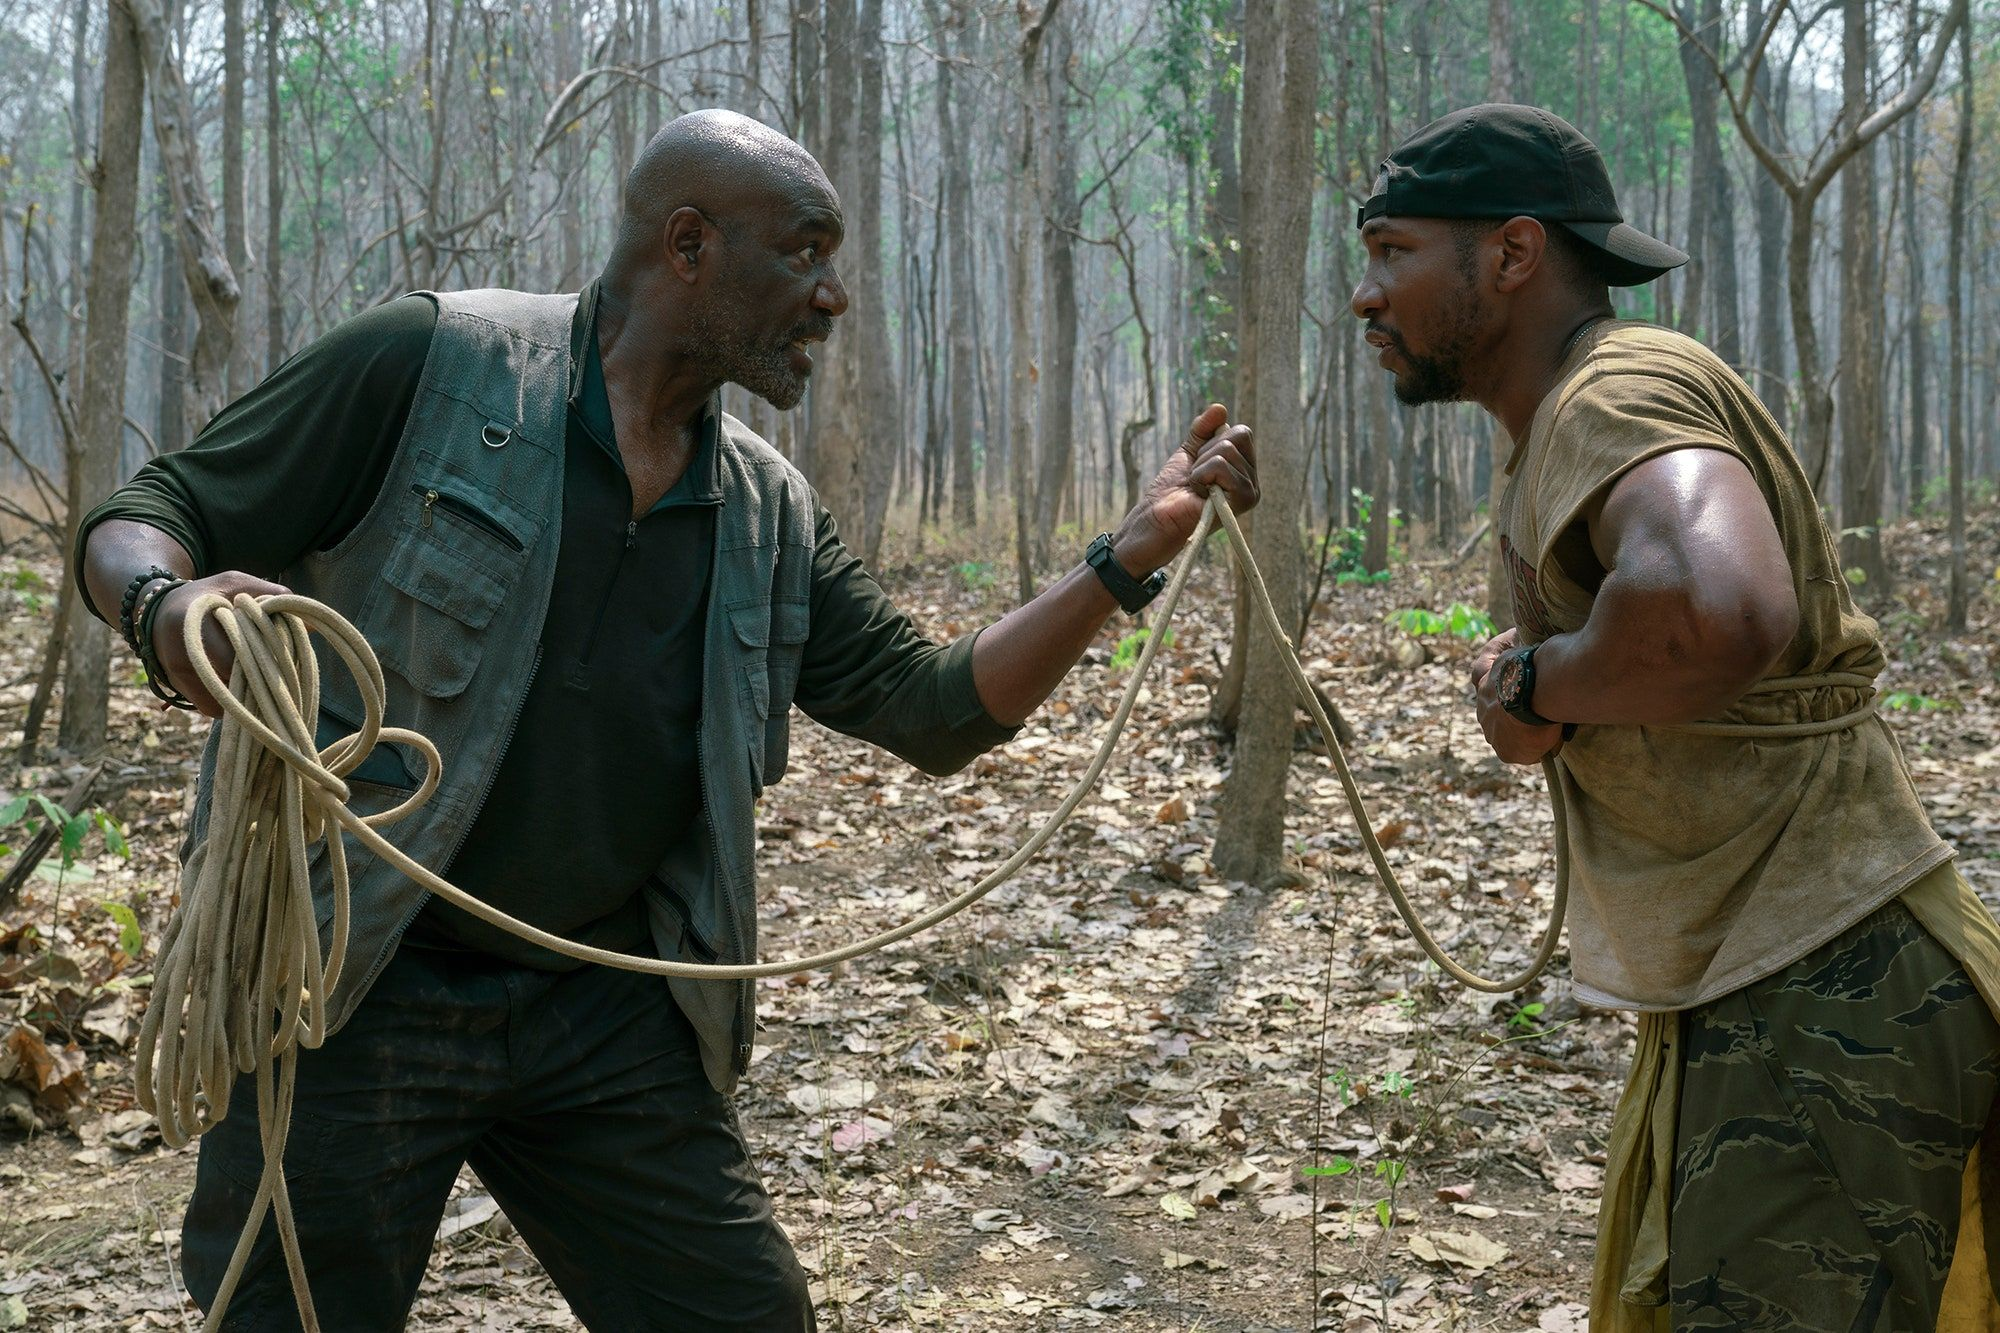 First Look at Spike Lee's 'Da 5 Bloods'